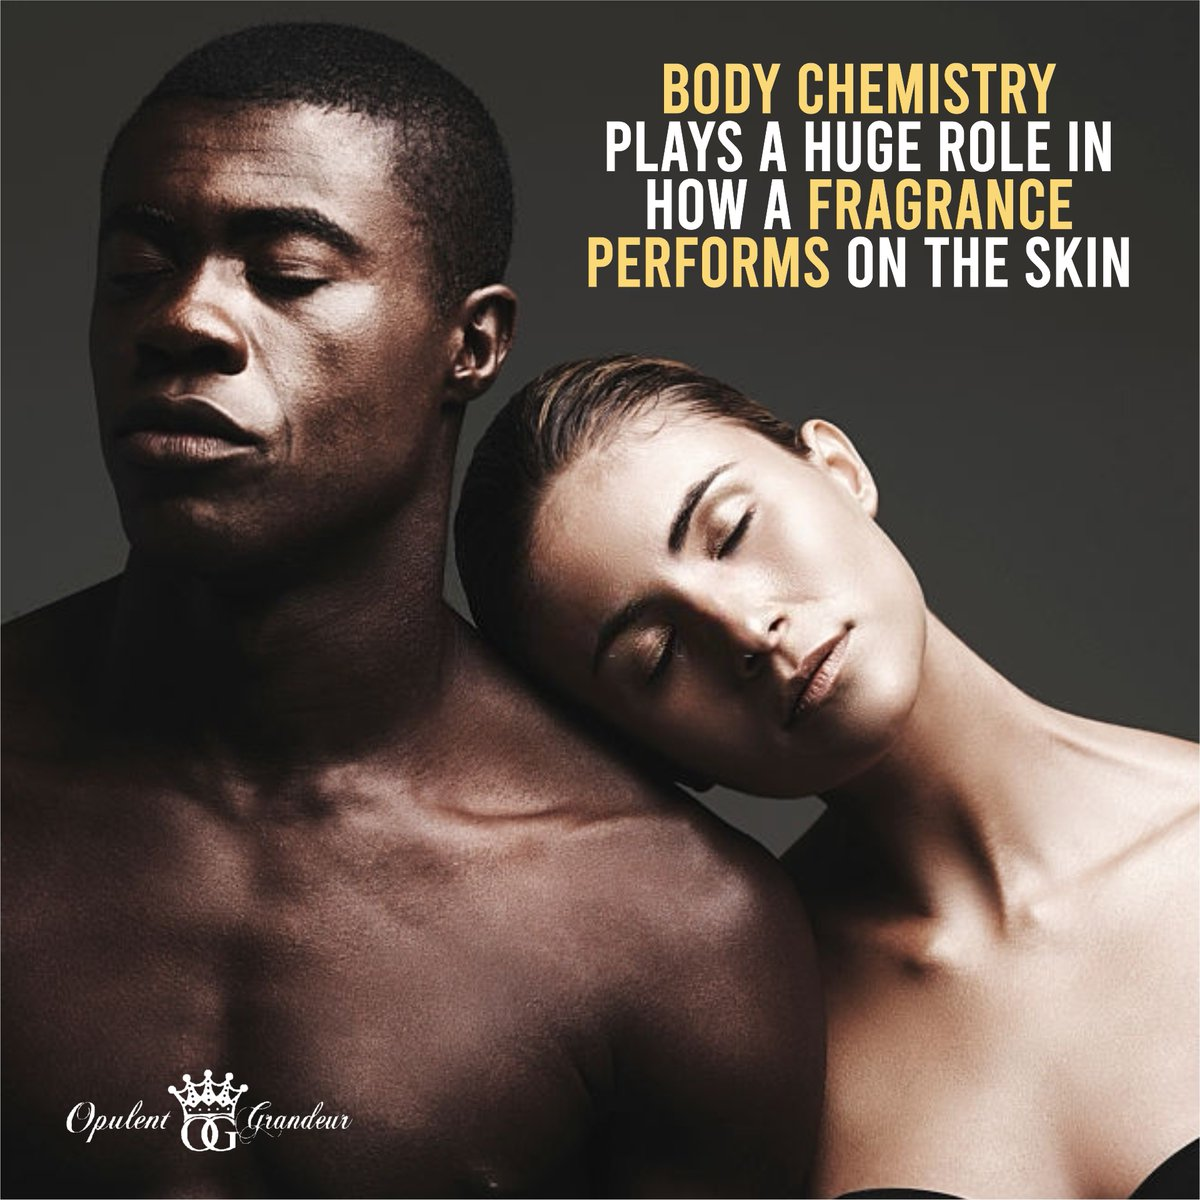 Body Chemistry plays a huge role in how a fragrance performs on the skin as well as temperatures and skin moisture. ---- 🌐   #opulentgrandeur #fragrance #perfume #parfum #scent #perfumecollection #perfumes #beauty #fragrances #scentoftheday #fragrancelover